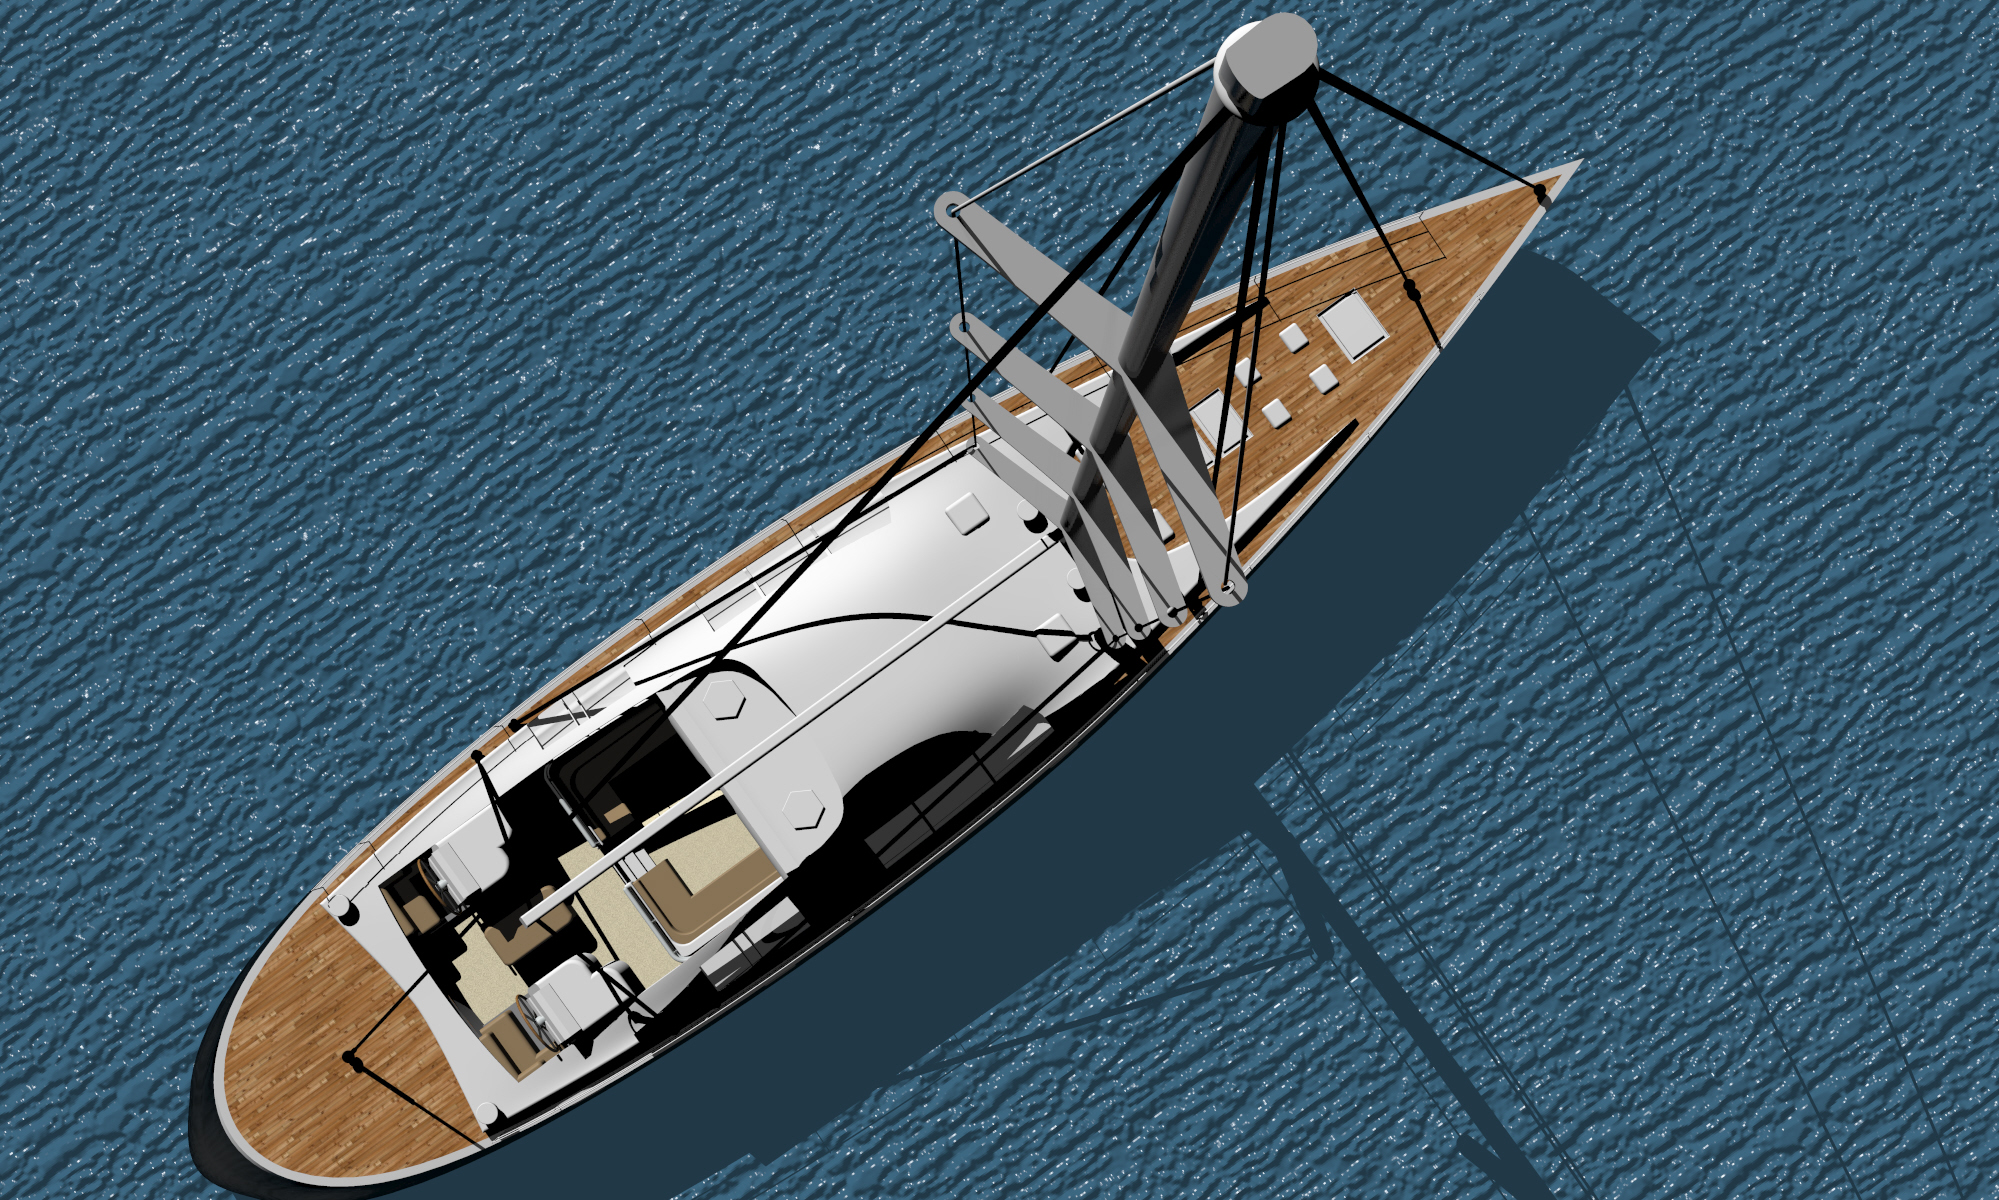 3d modeling marine transportation by michael giallombardo at